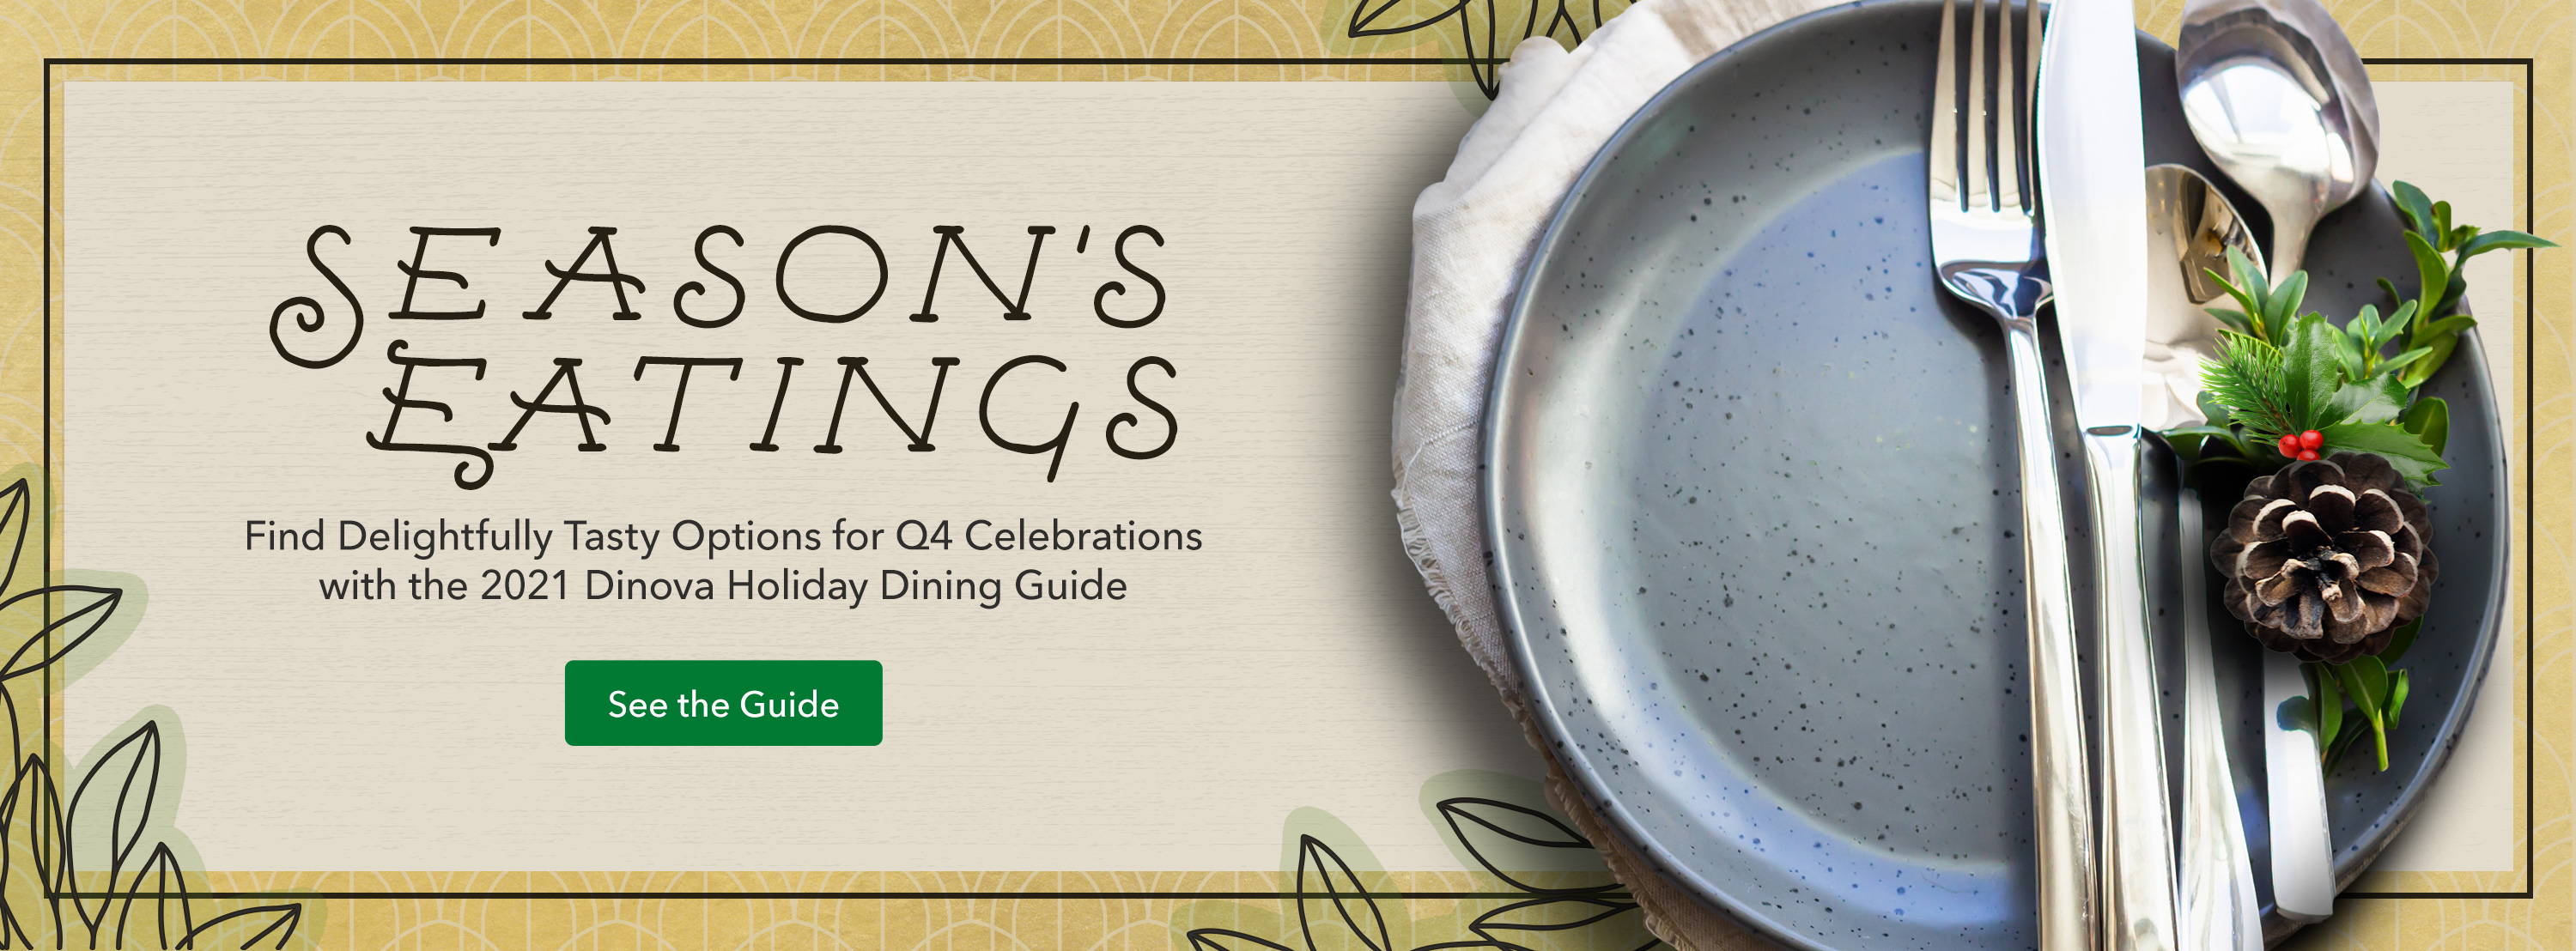 Dinova Holiday Guide hero with plate, cutlery, pinecone and holly sprig